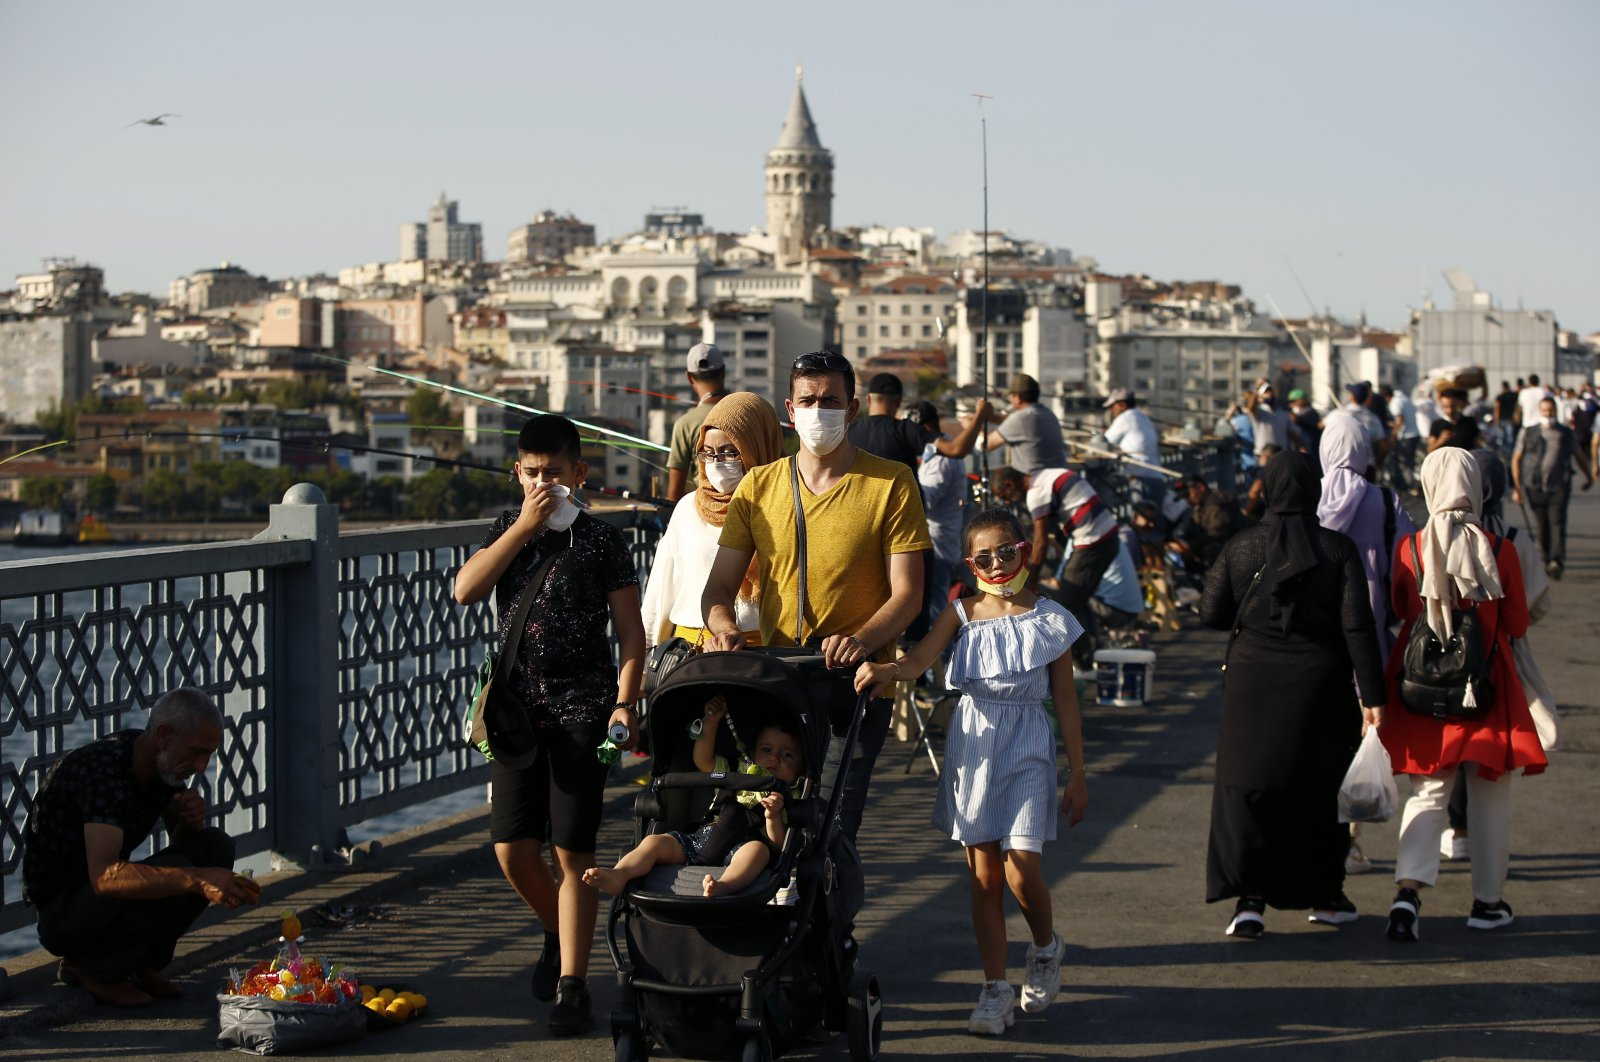 People walk along the Galata Bridge, with the historical Galata Tower in the background, in Istanbul, Friday, Aug. 7, 2020. (AP Photo)